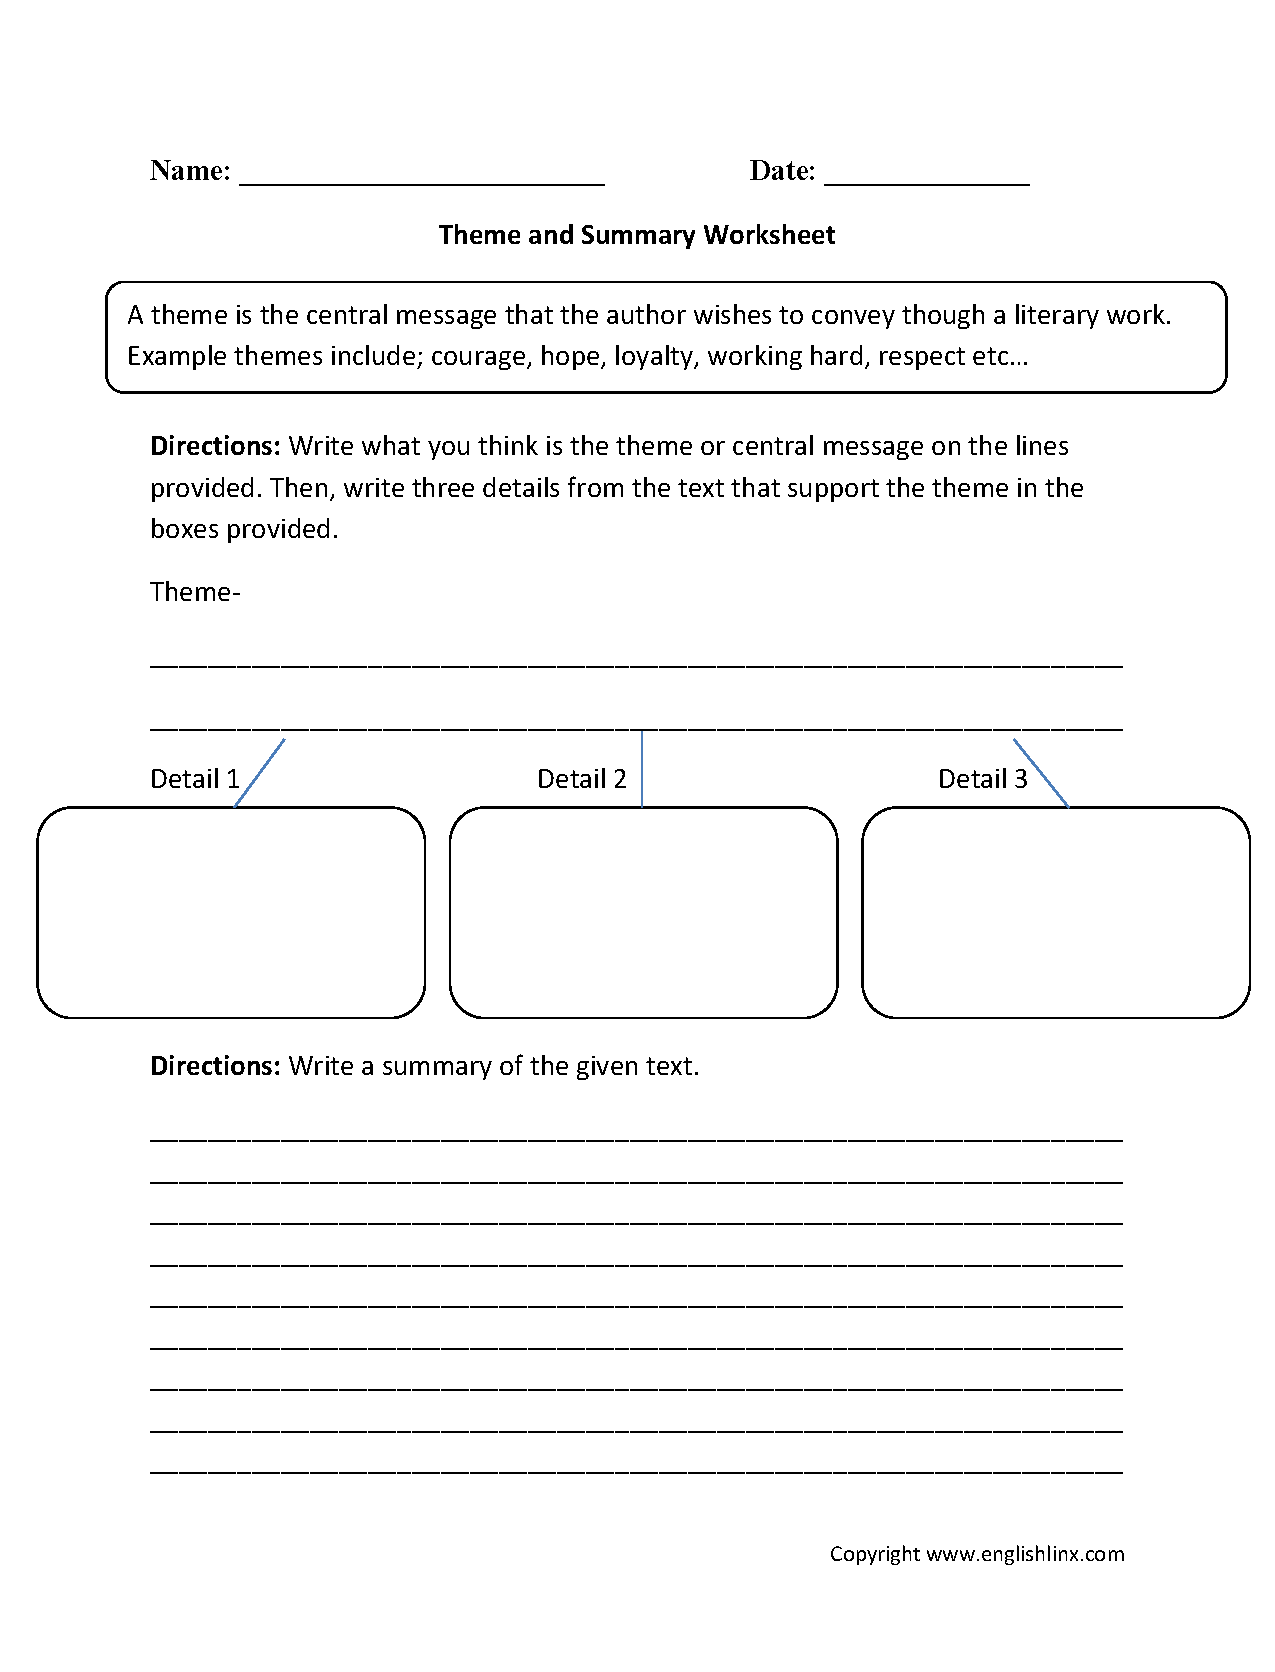 Theme And Summary Worksheets